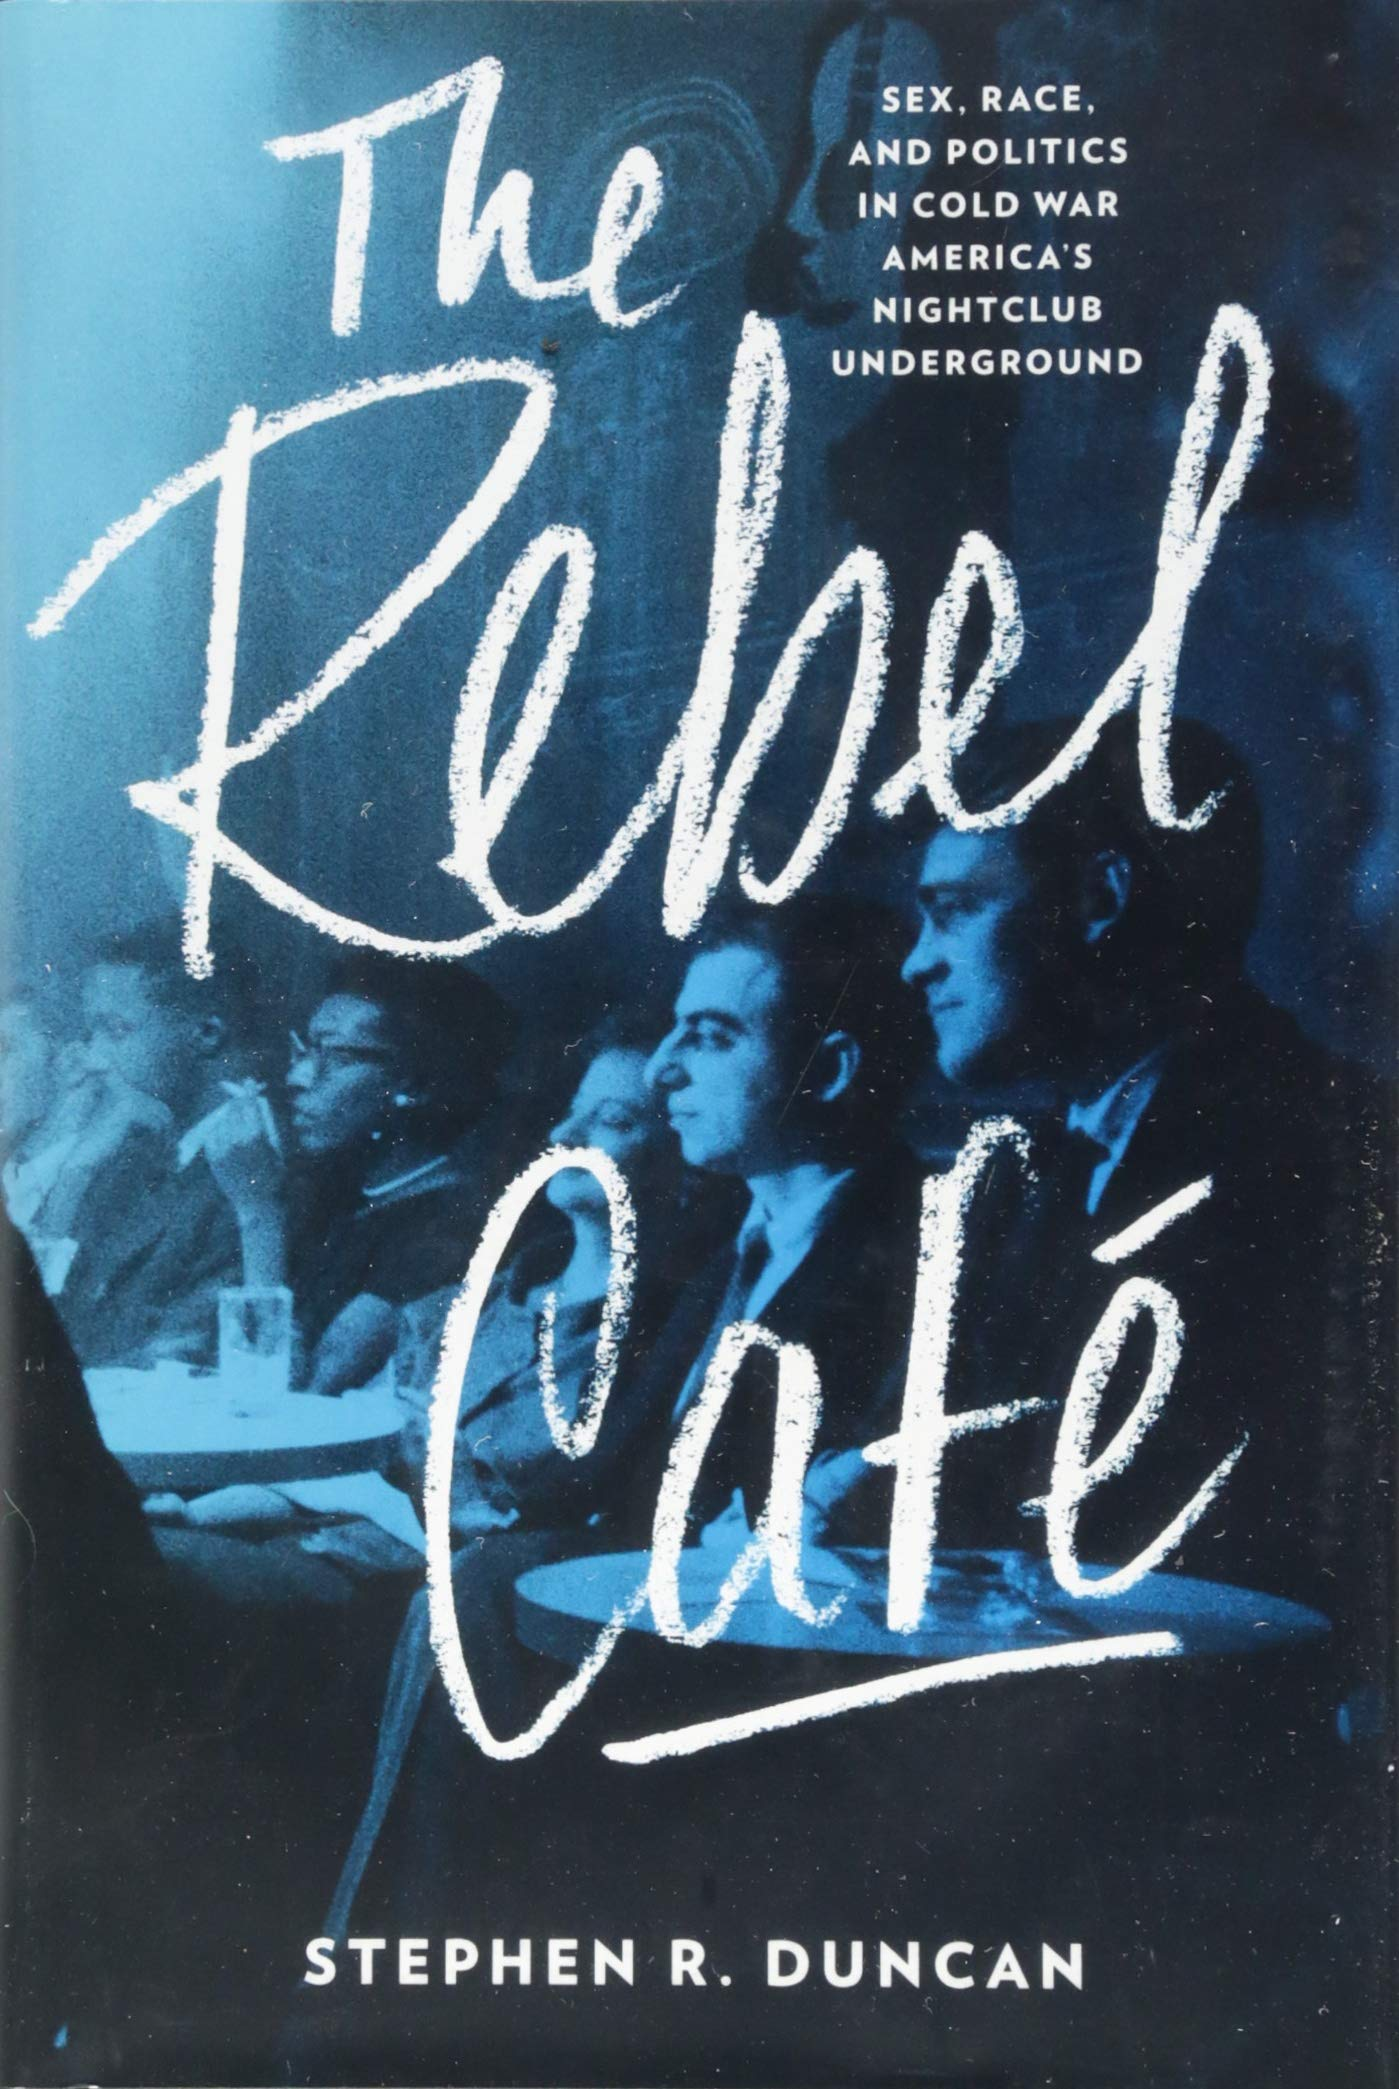 The Rebel Café: Sex, Race, and Politics in Cold War